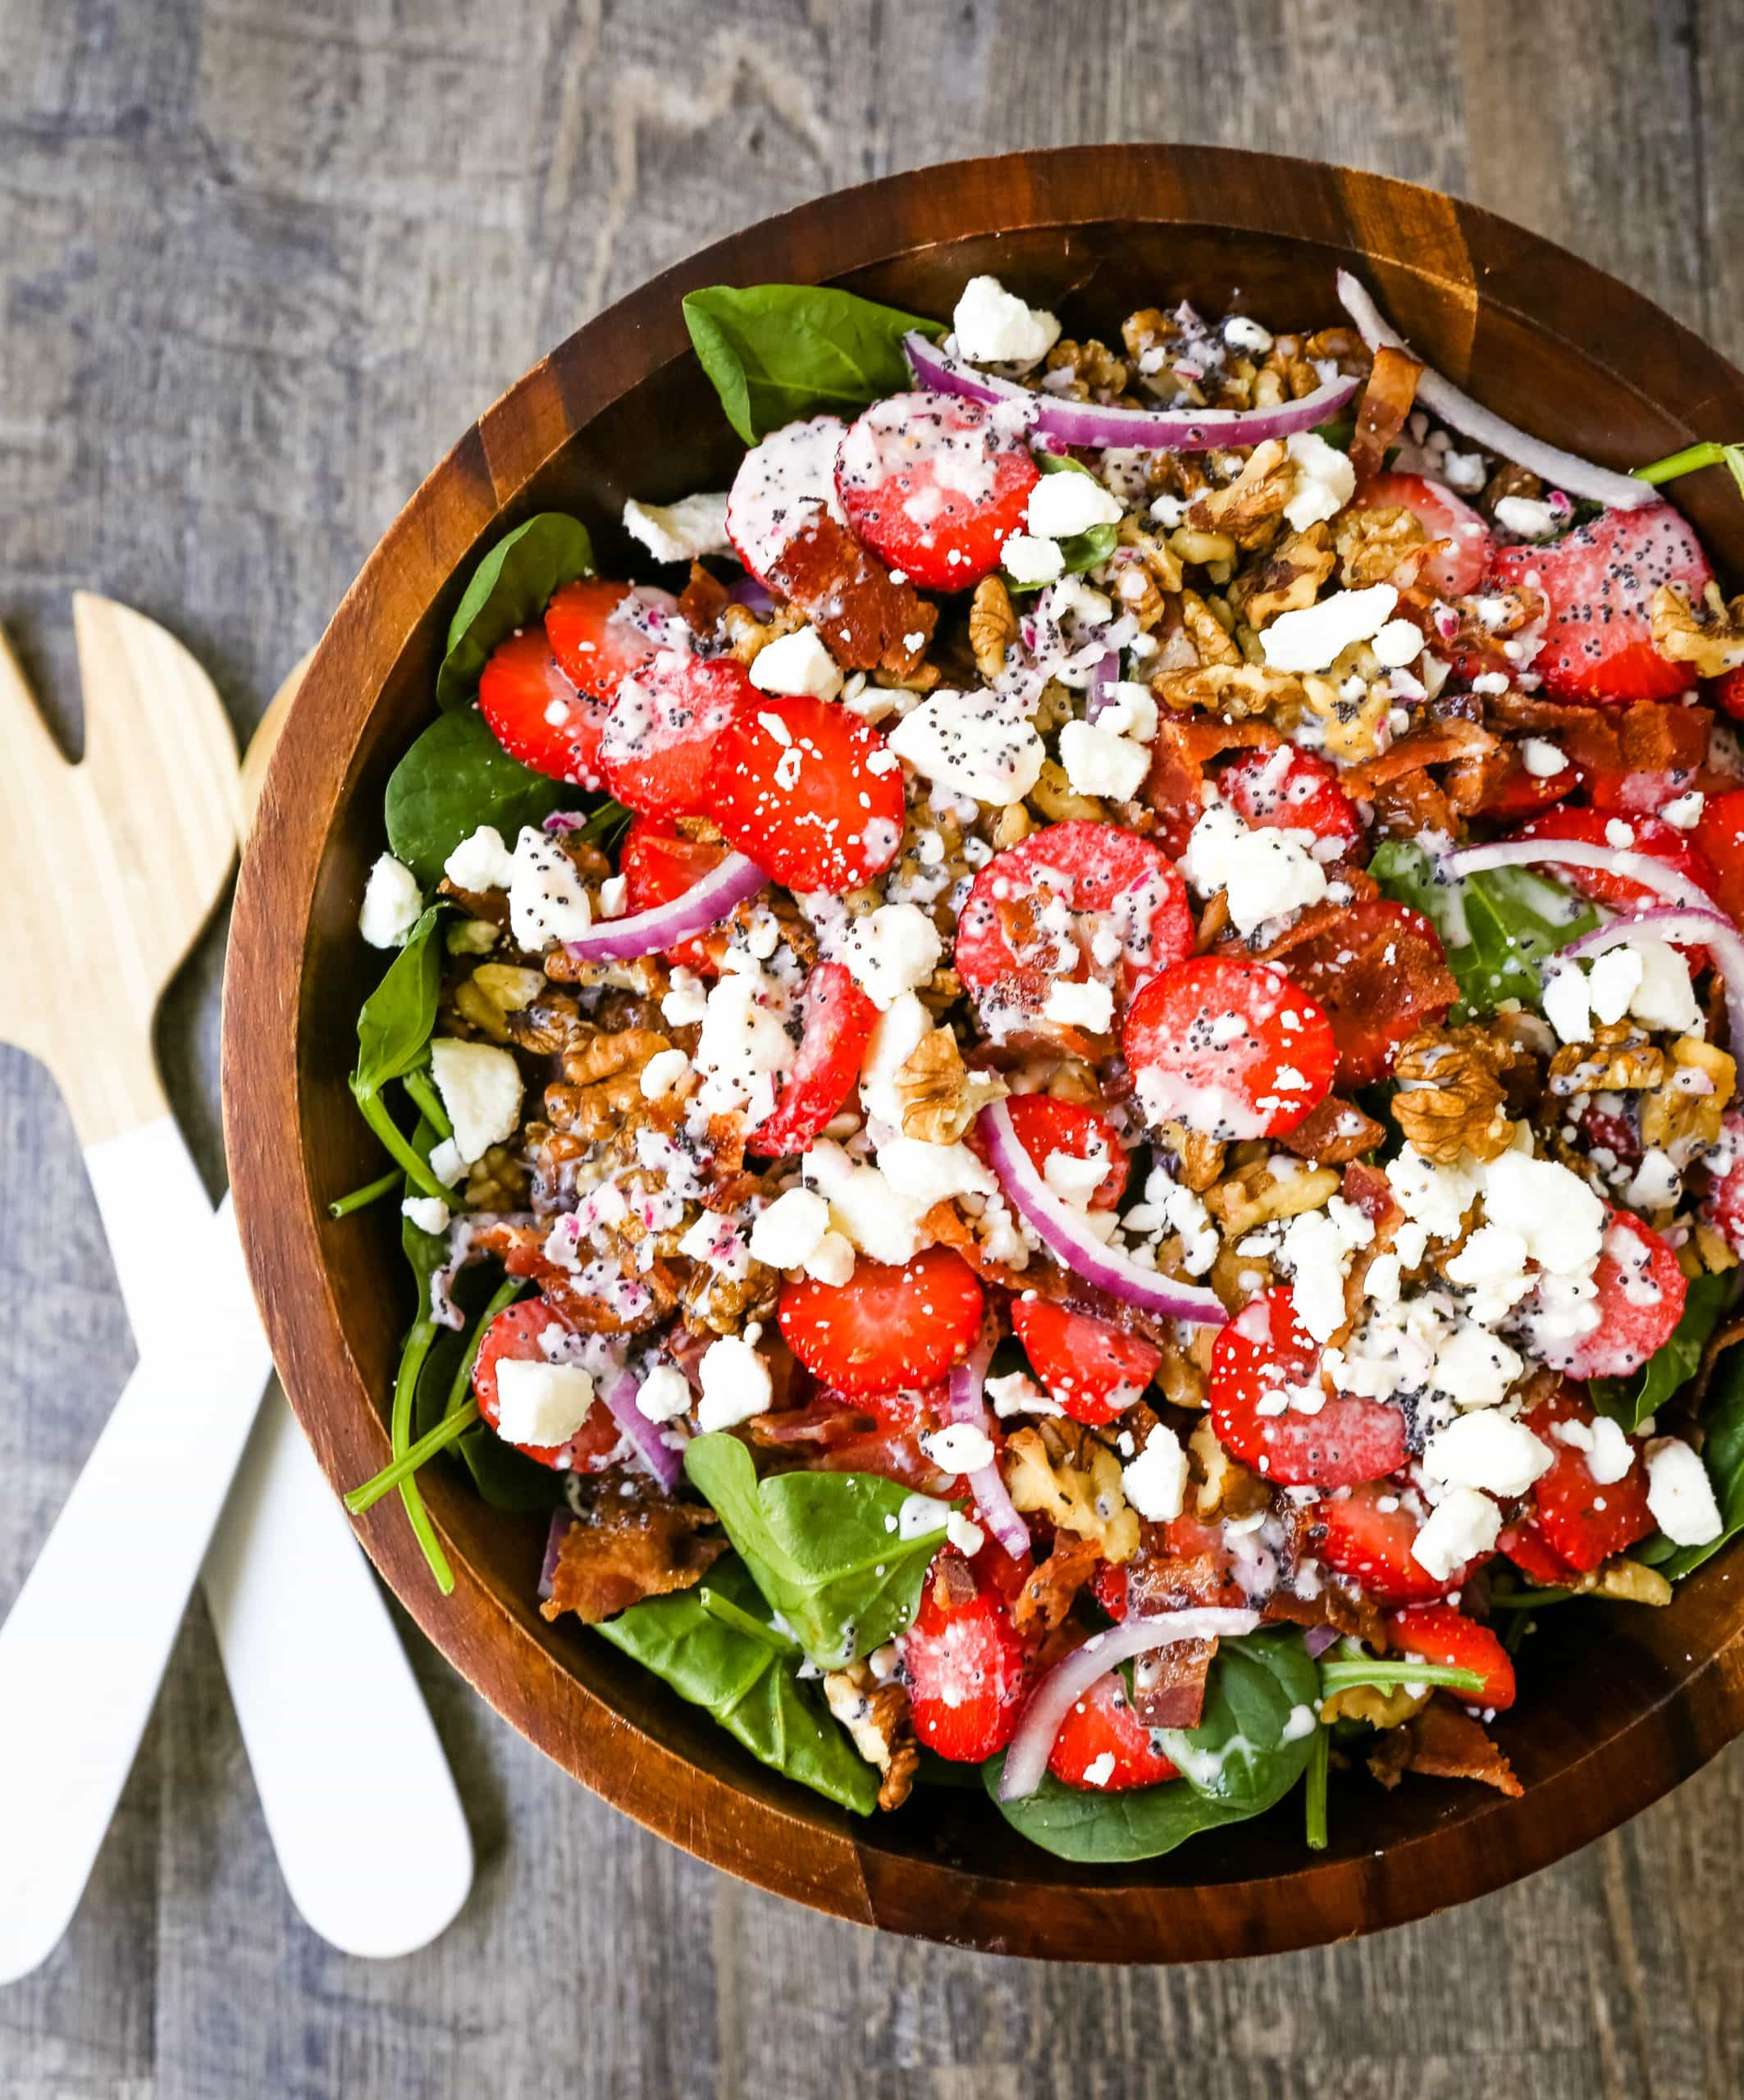 Strawberry Spinach Salad with Poppyseed